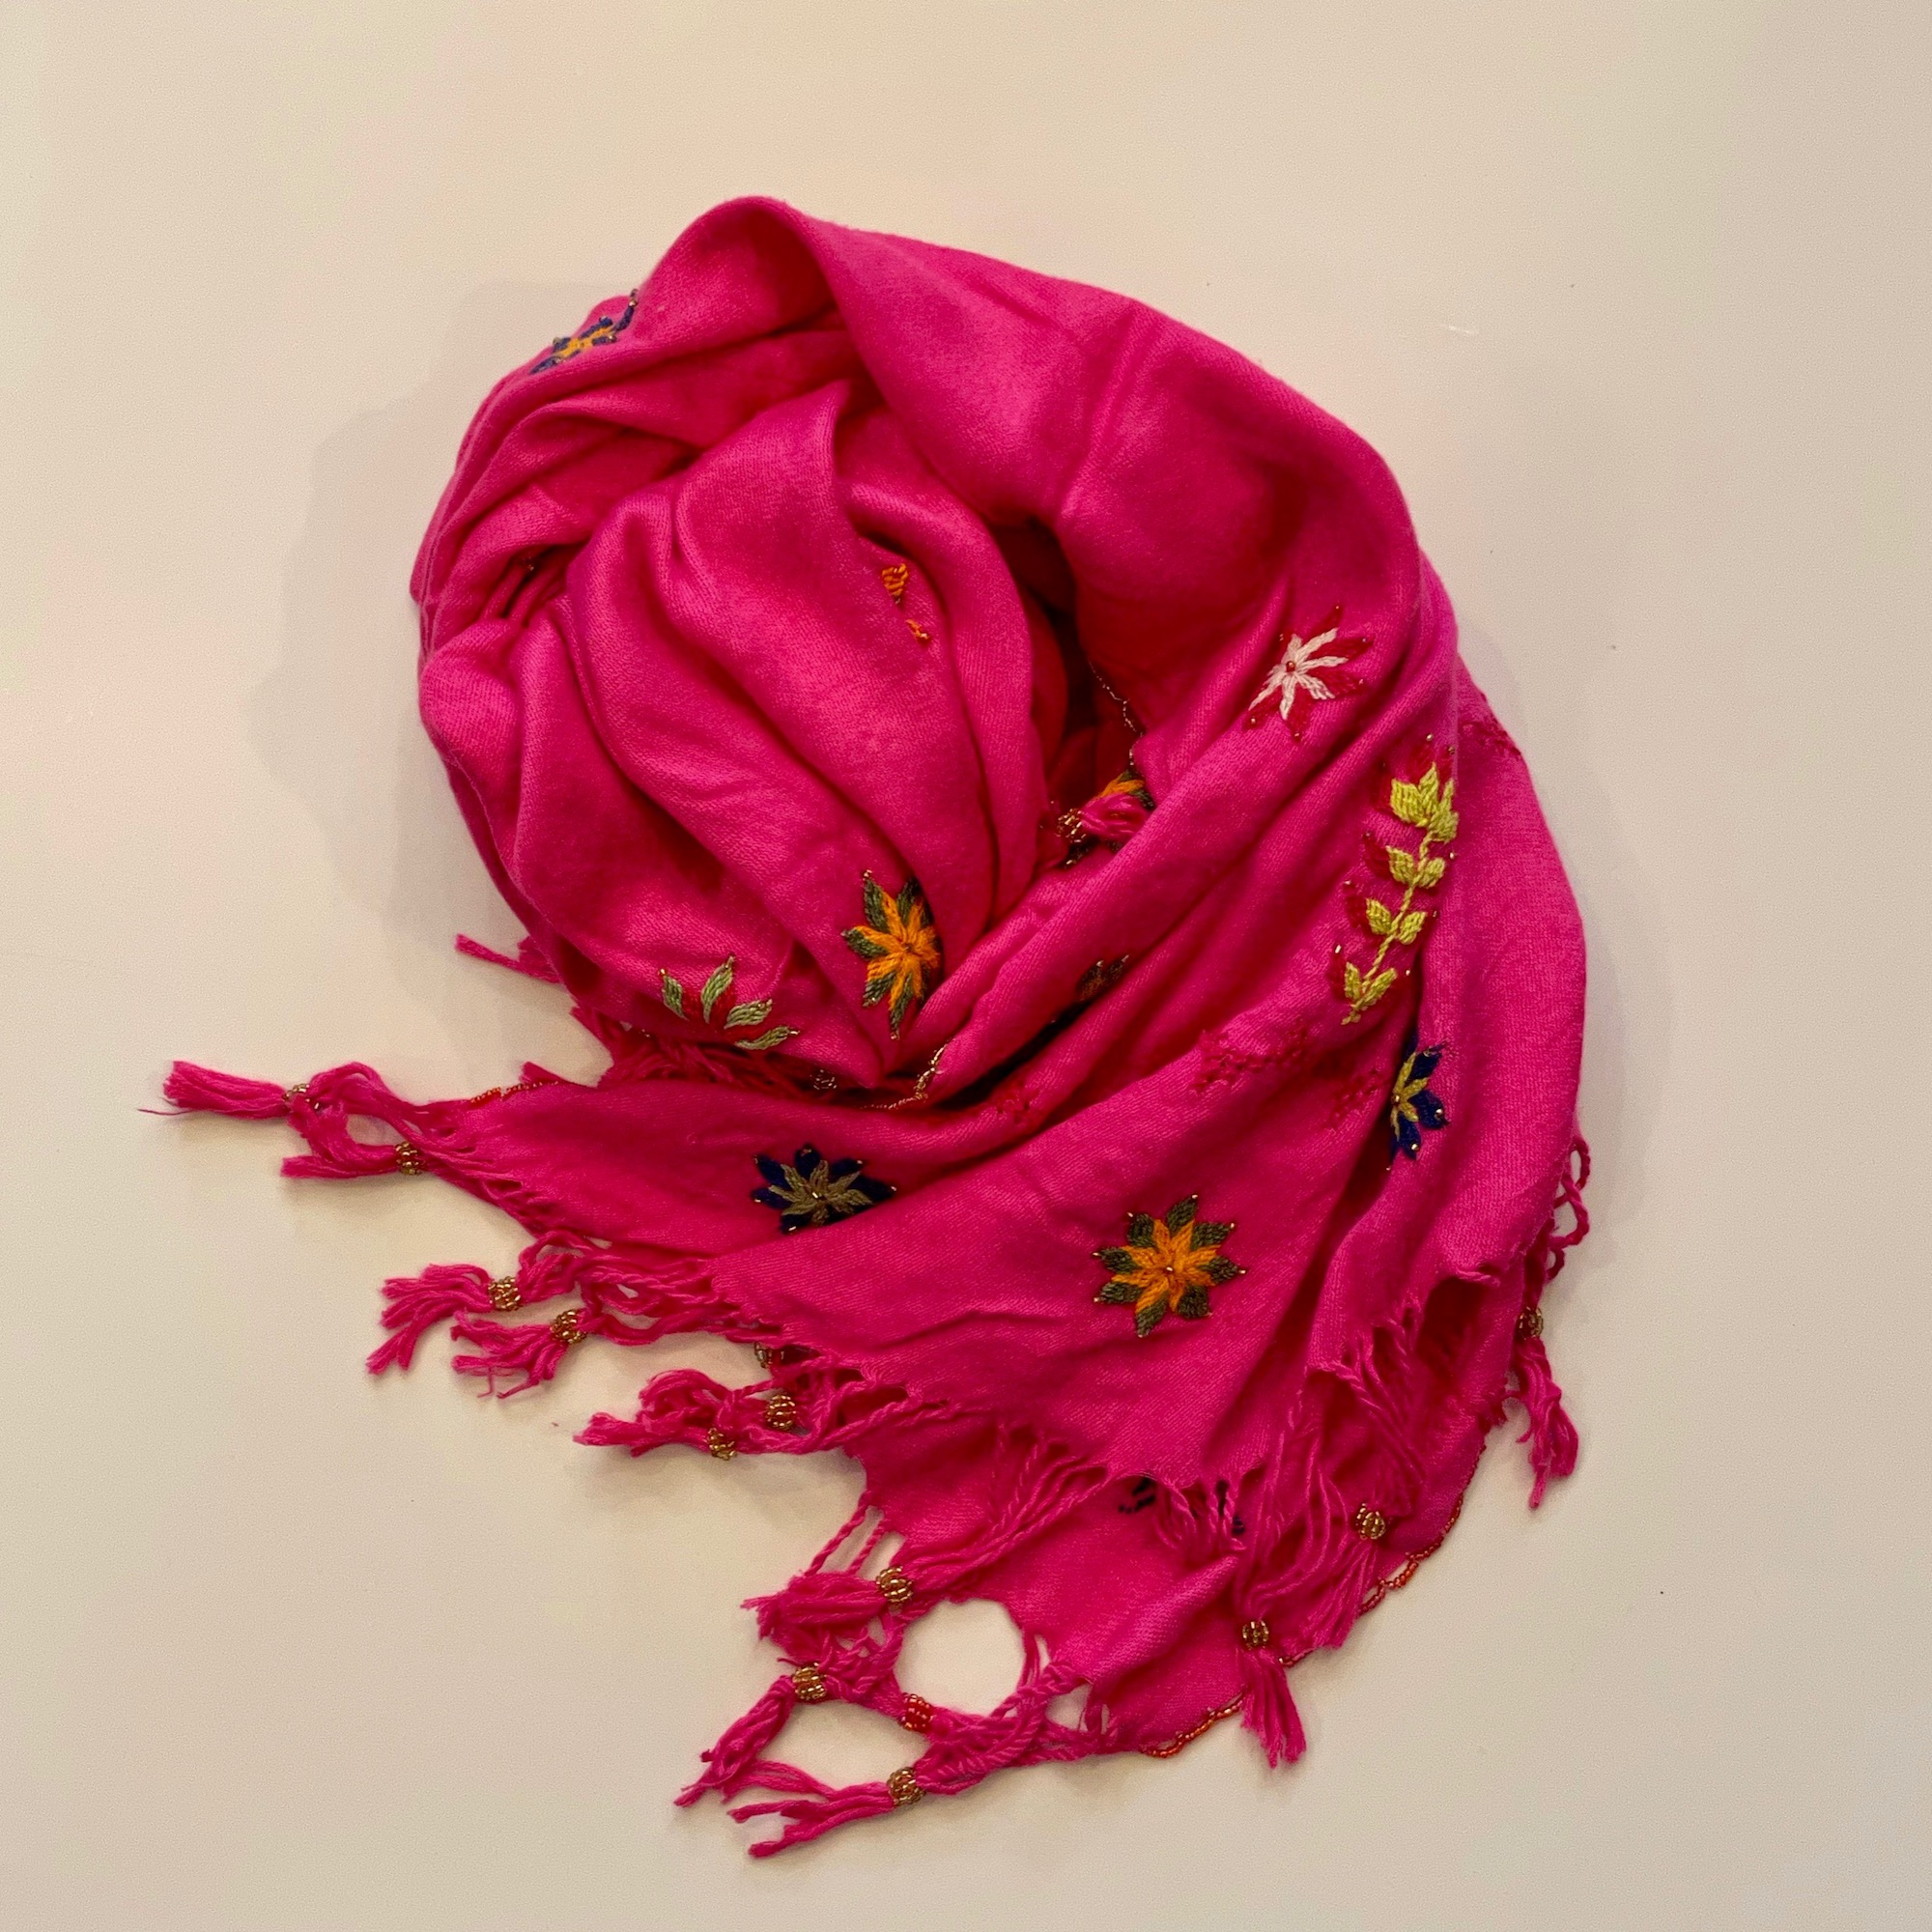 Bedouin Hand-embroidered Hot Pink Shawl